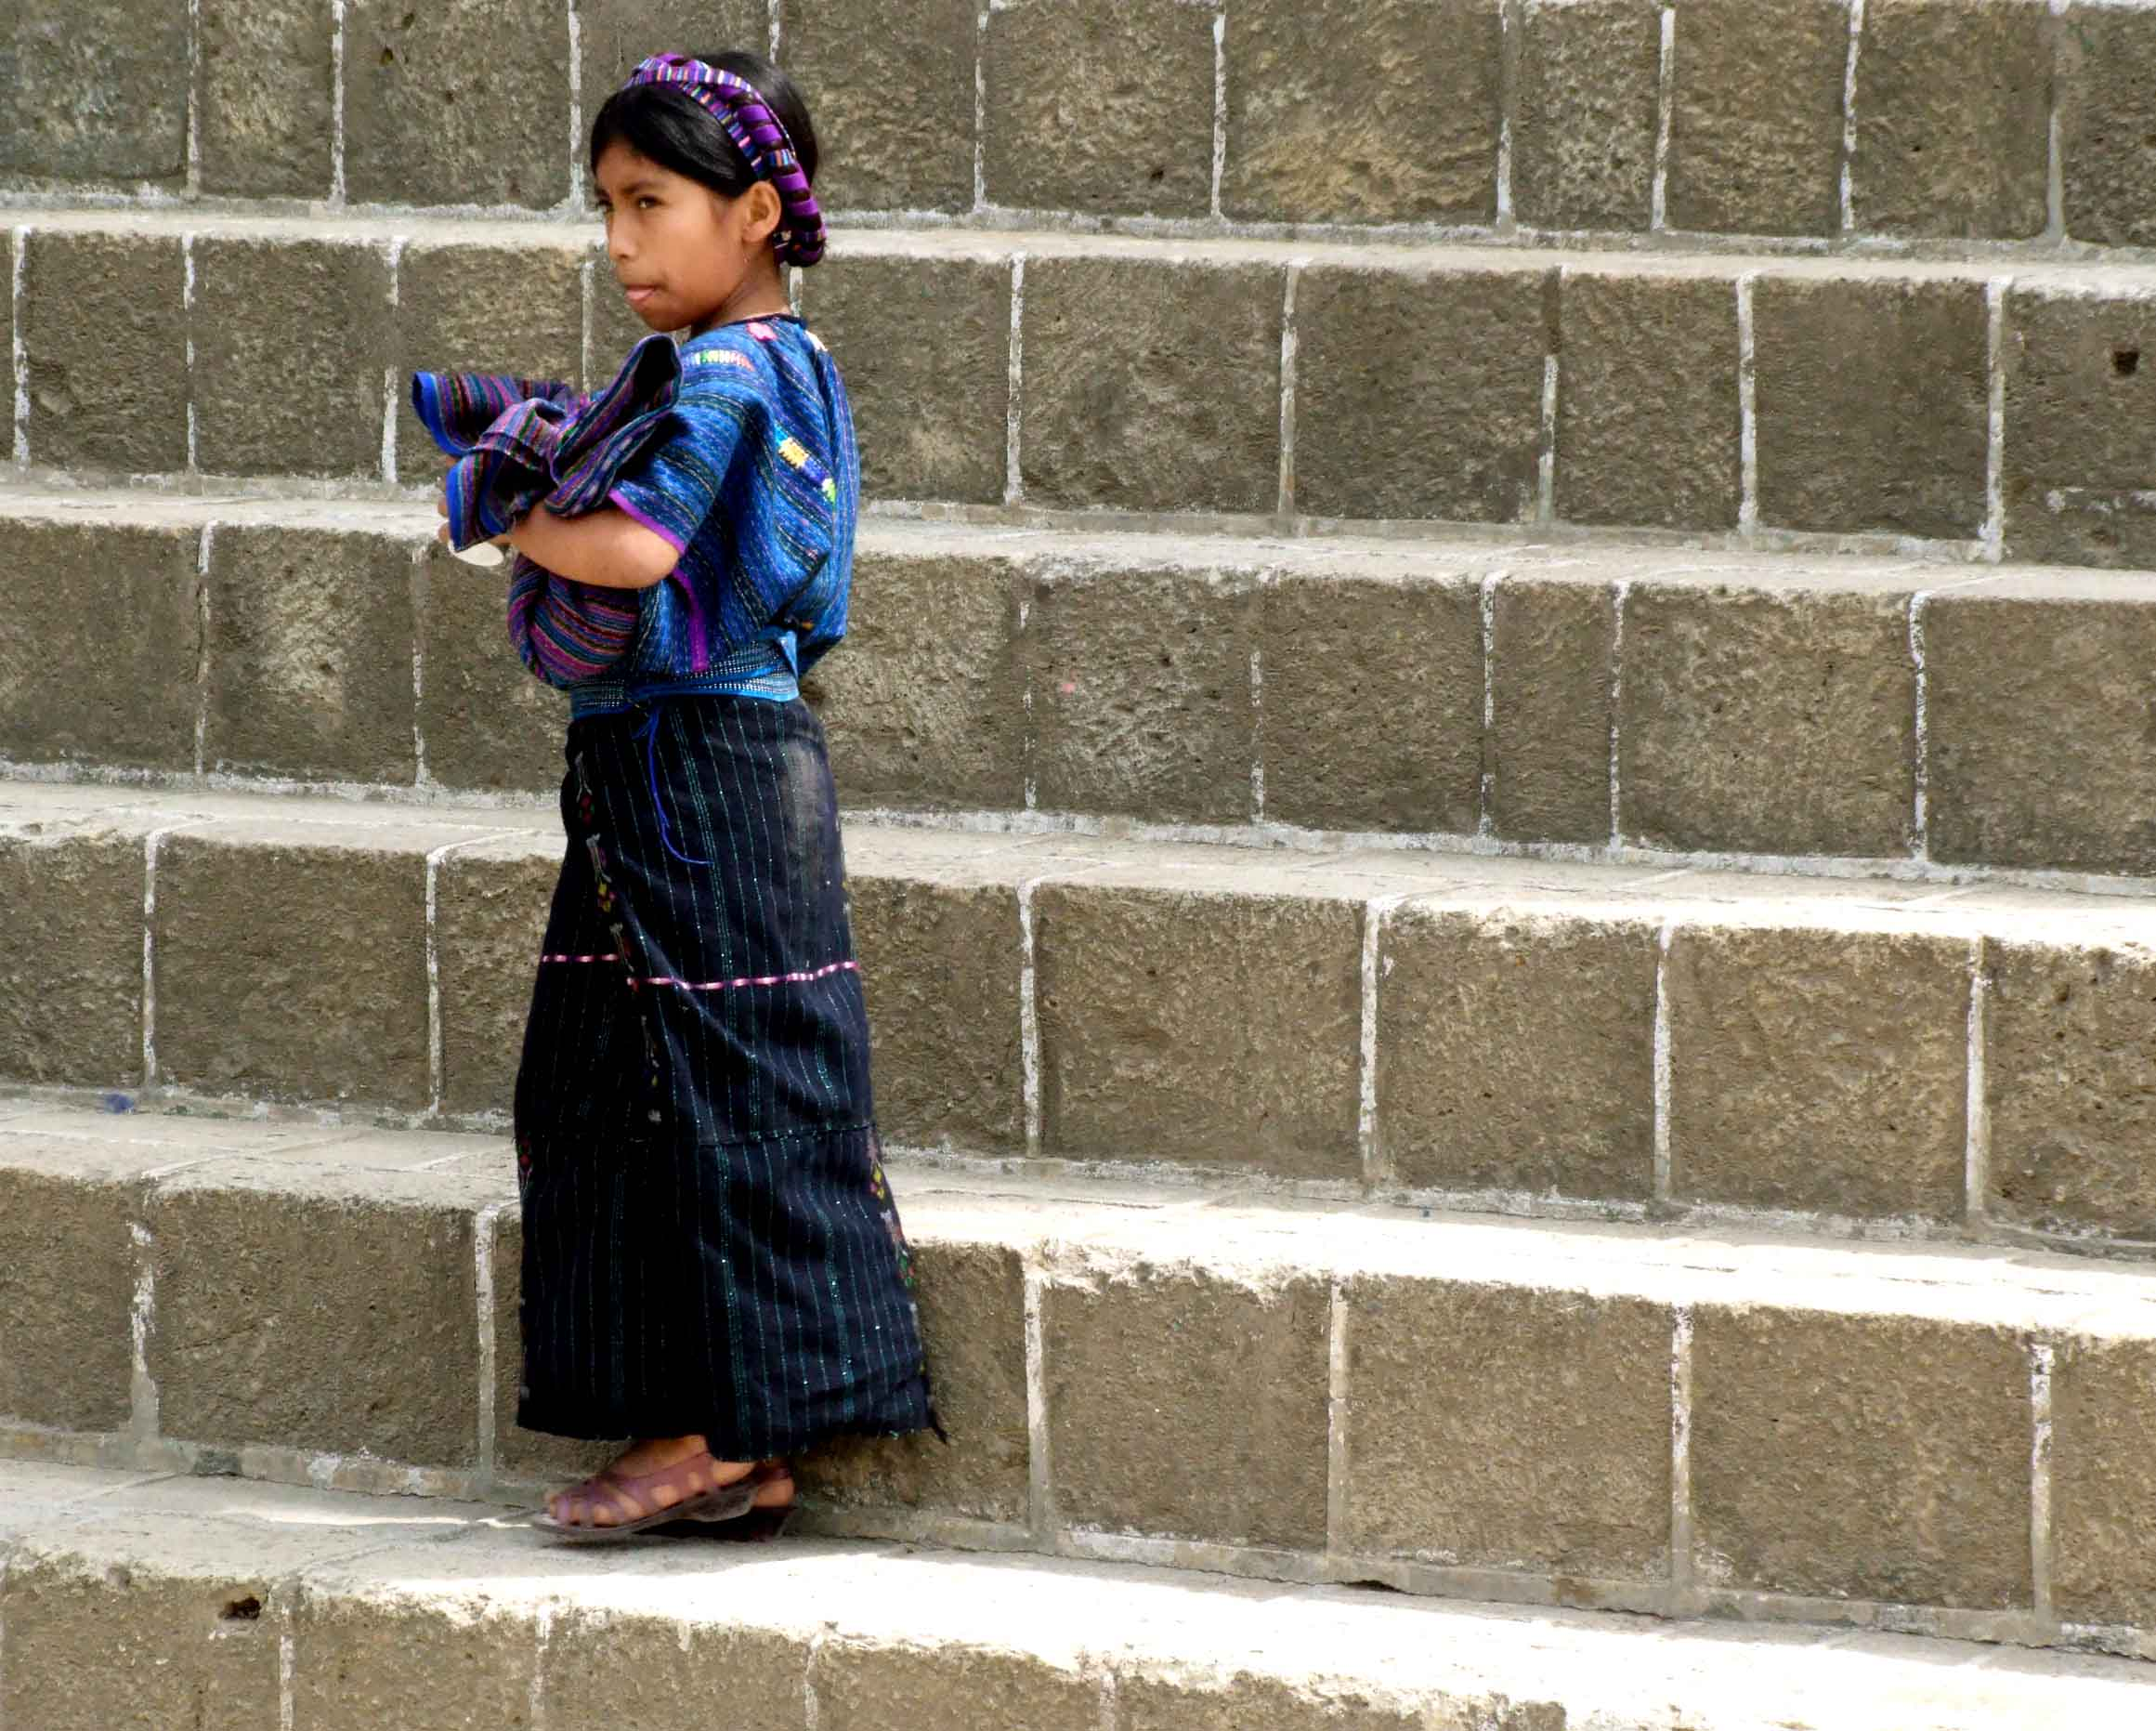 Girl in traditional blue clothing on stone steps